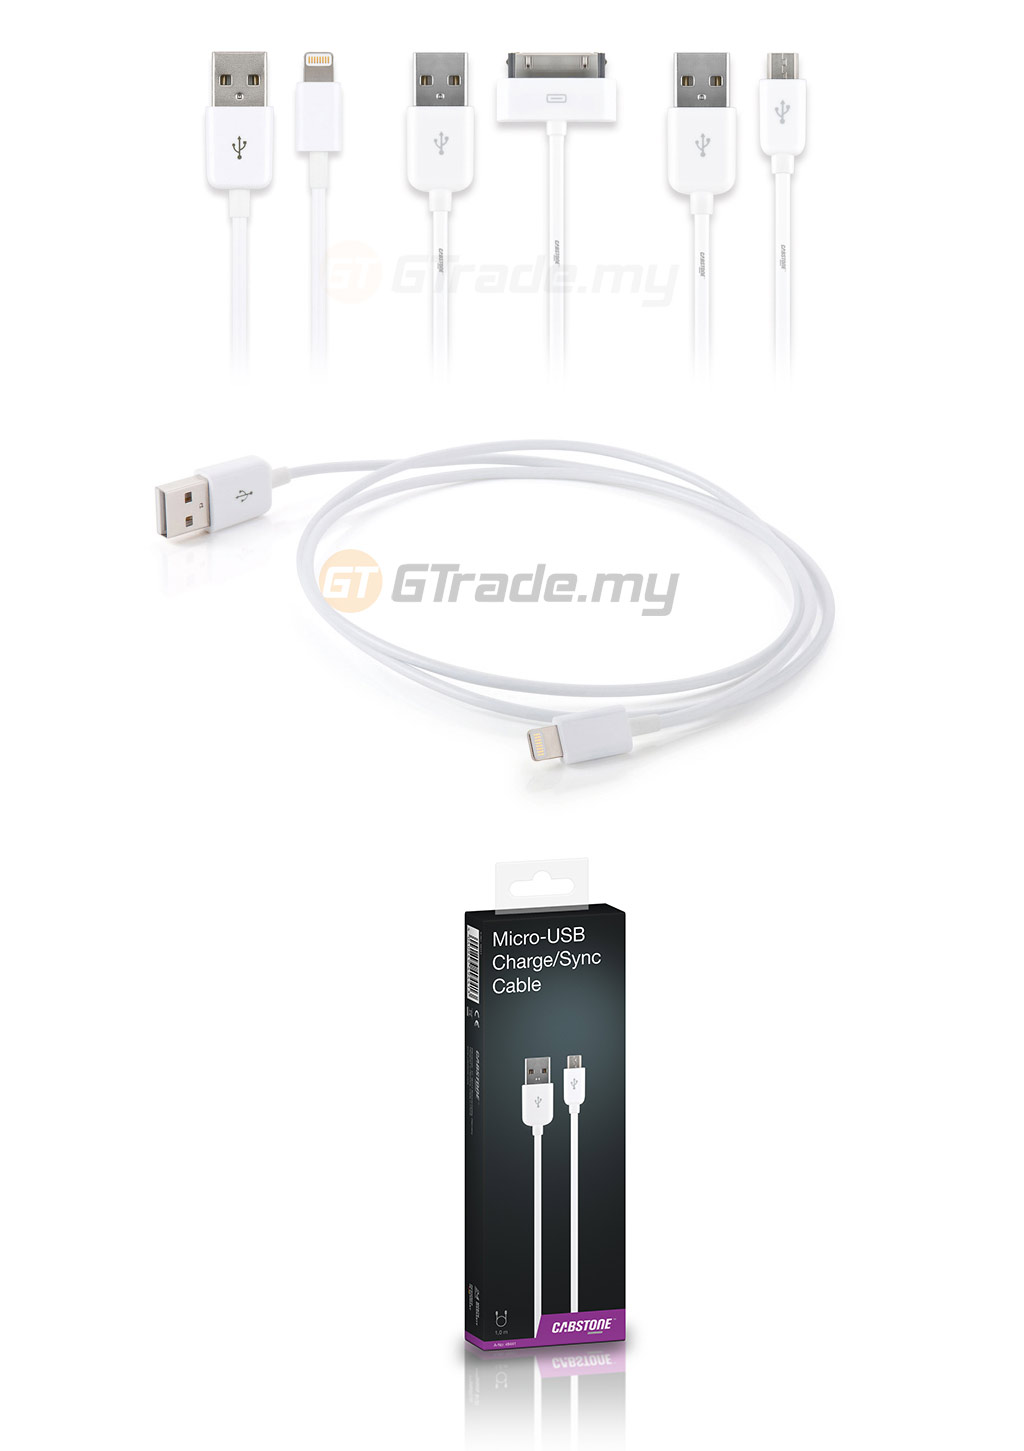 cabstone-sync-charger-data-usb-cable-p